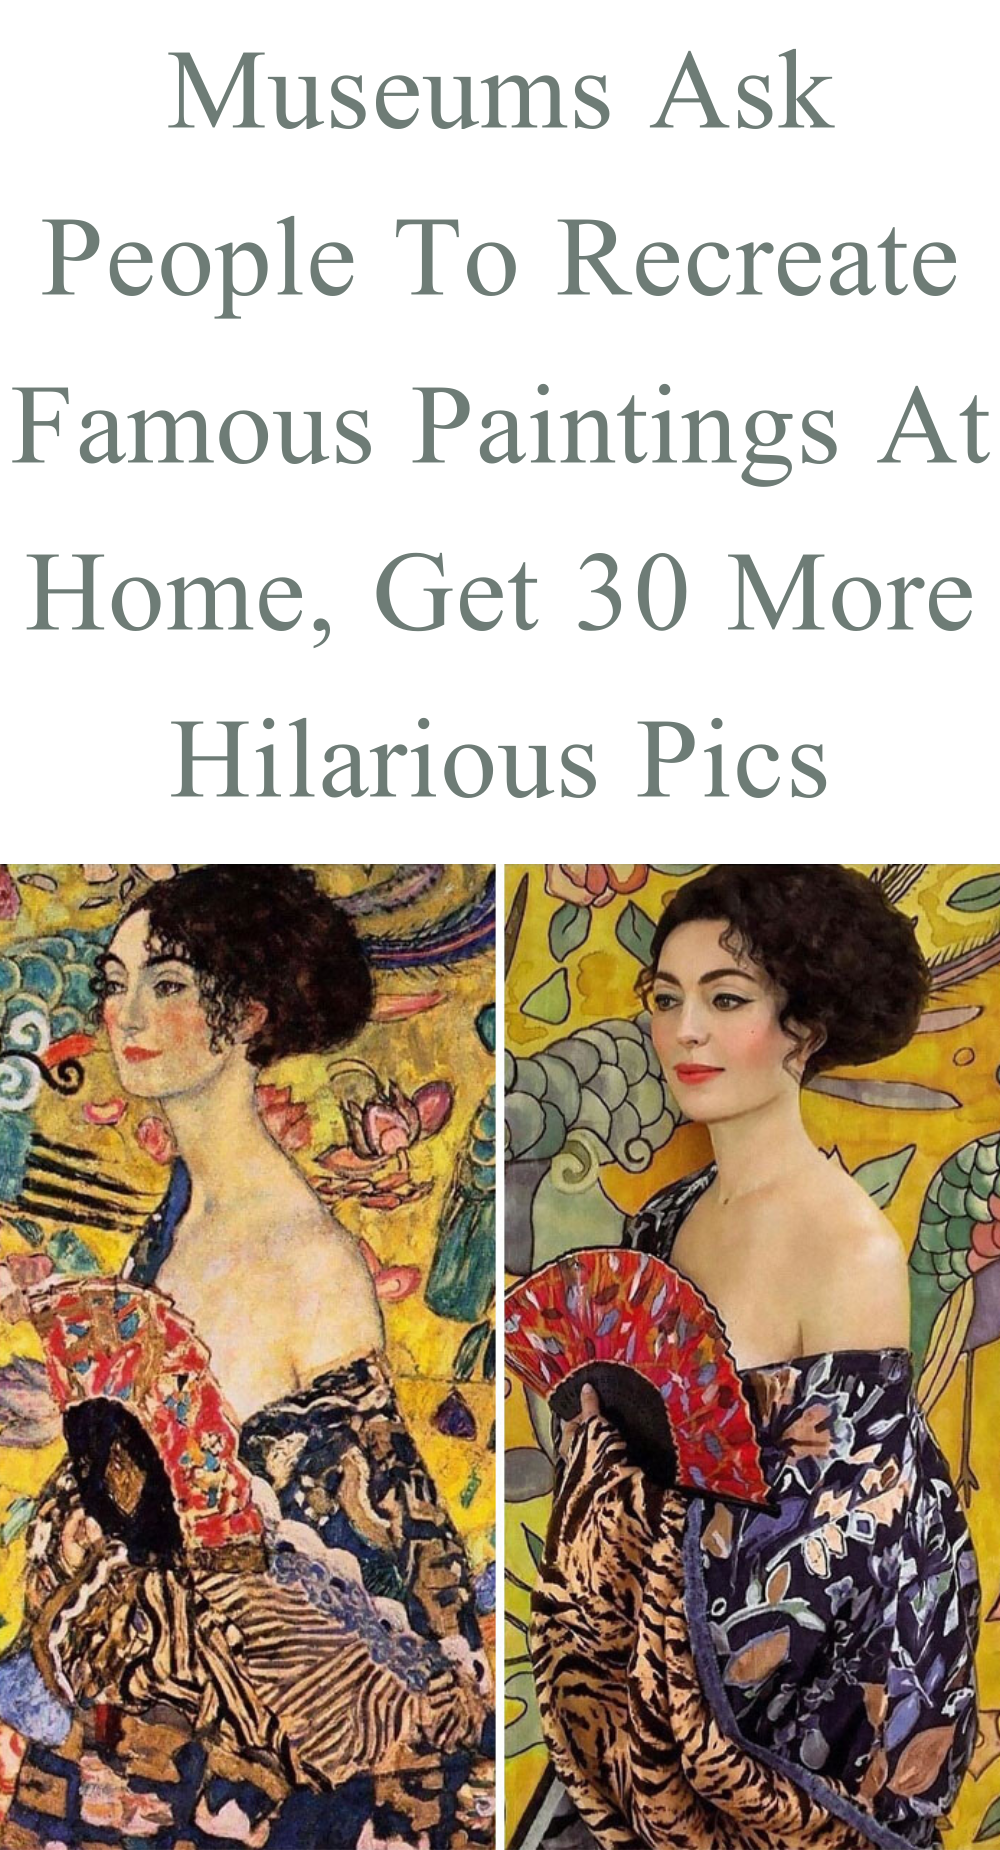 People Stuck At Home Are Letting Their Creativity Loose The J Paul Getty Museum Challenged Art Lovers To Post Photos Of Th In 2020 Funny Pictures Famous J Paul Getty